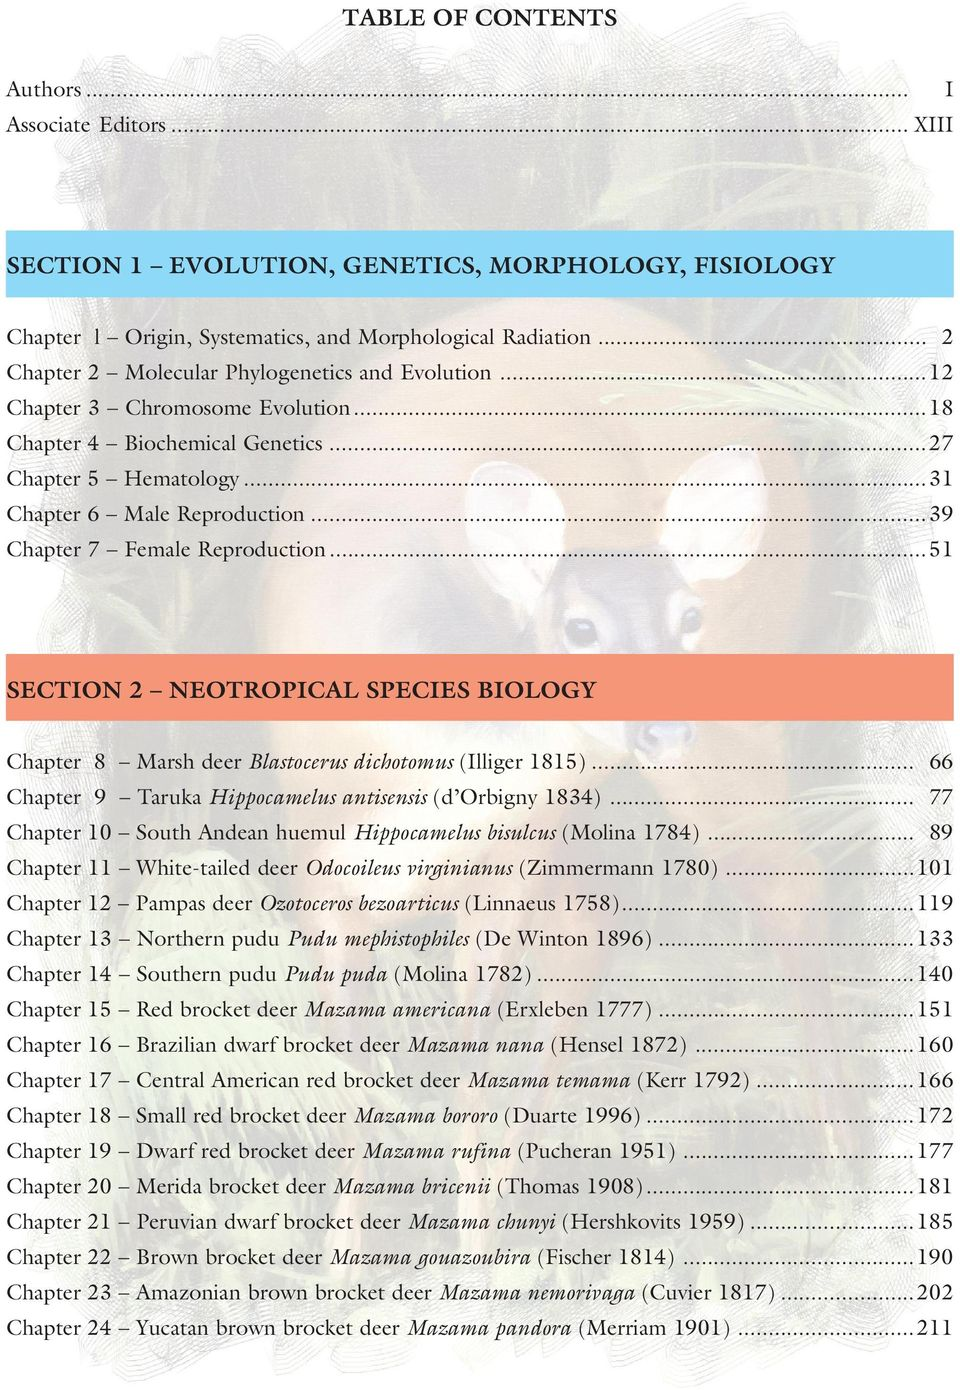 ..39 Chapter 7 Female Reproduction...51 SECTION 2 NEOTROPICAL SPECIES BIOLOGY Chapter 8 Marsh deer Blastocerus dichotomus (Illiger 1815)... 66 Chapter 9 Taruka Hippocamelus antisensis (d Orbigny 1834).